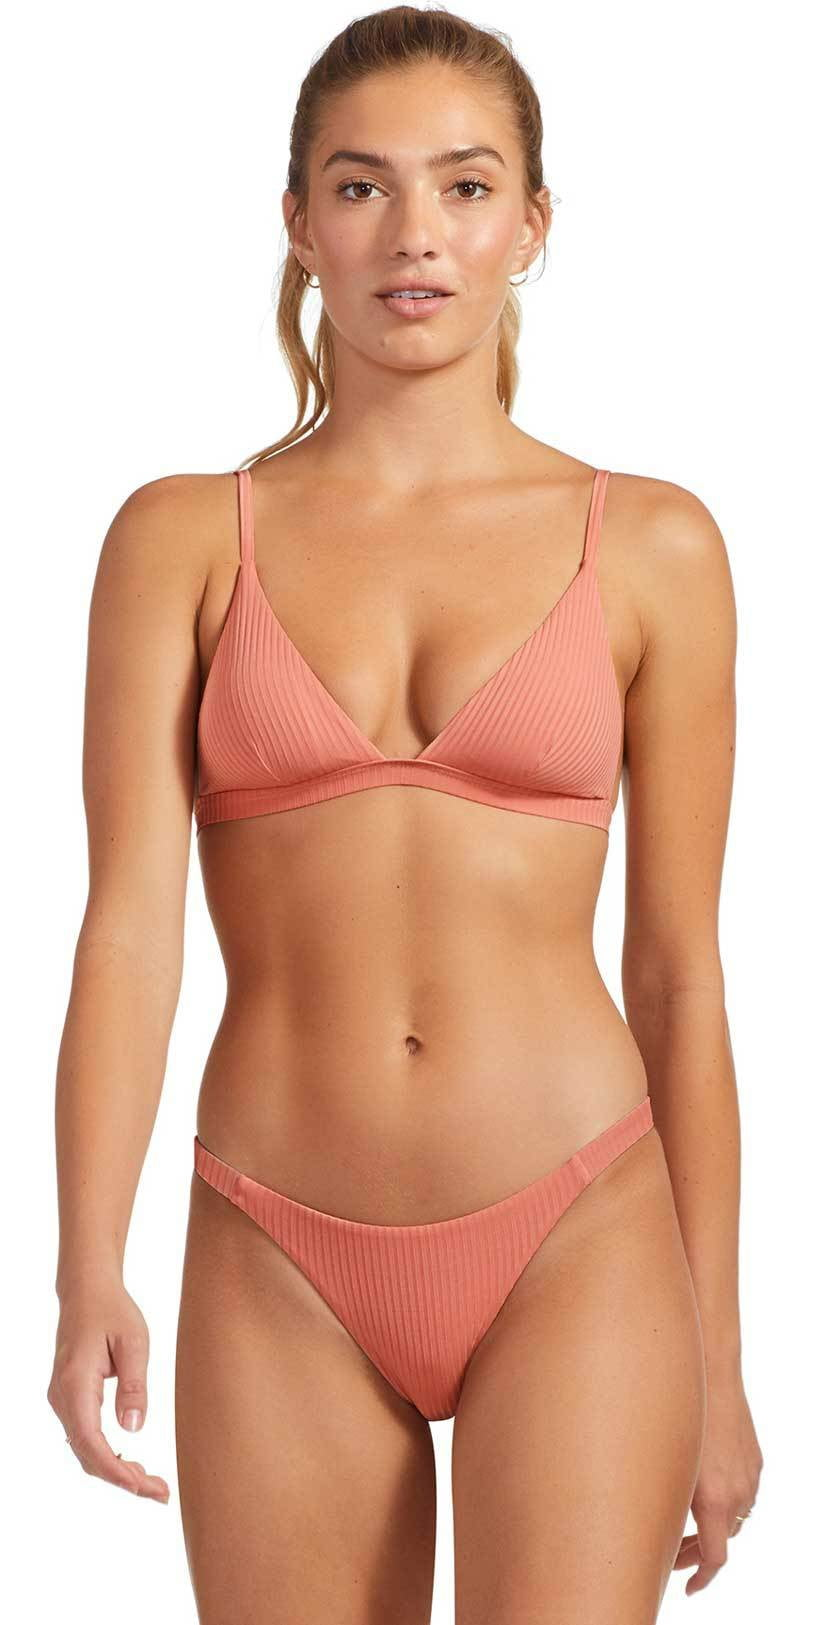 Vitamin A Carmen EcoRib Bikini Bottom in Soft Coral 84B ERSC: